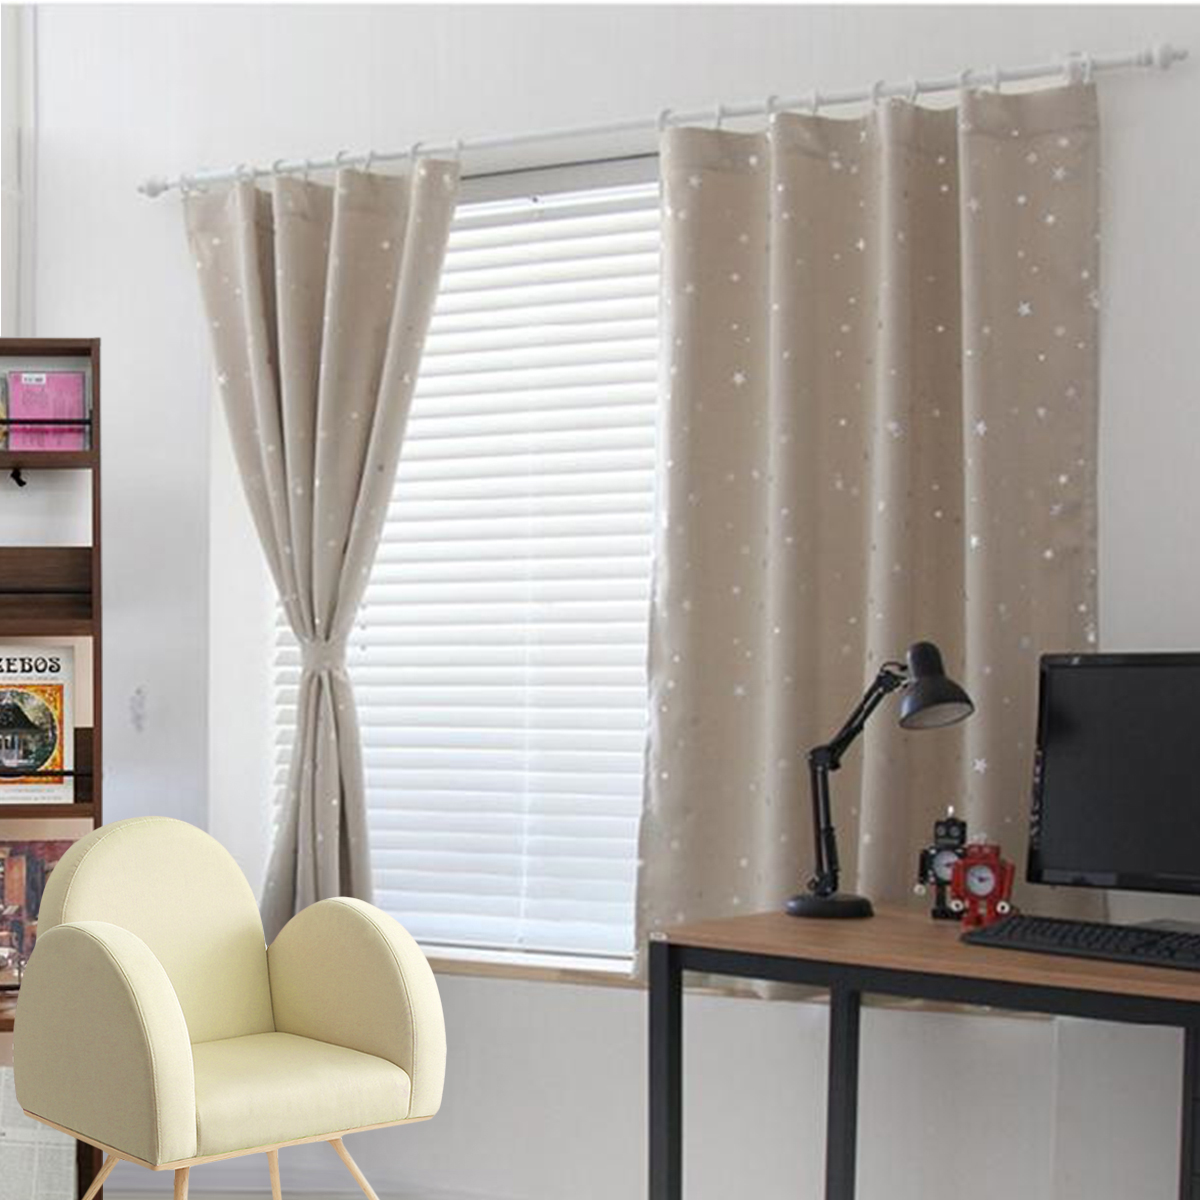 Curtains Blinds Accessories Window Blackout Curtains Room Thermal Insulated Kids Boy Girls Bedroom Decor Uk Home Furniture Diy Mhg Co Ke